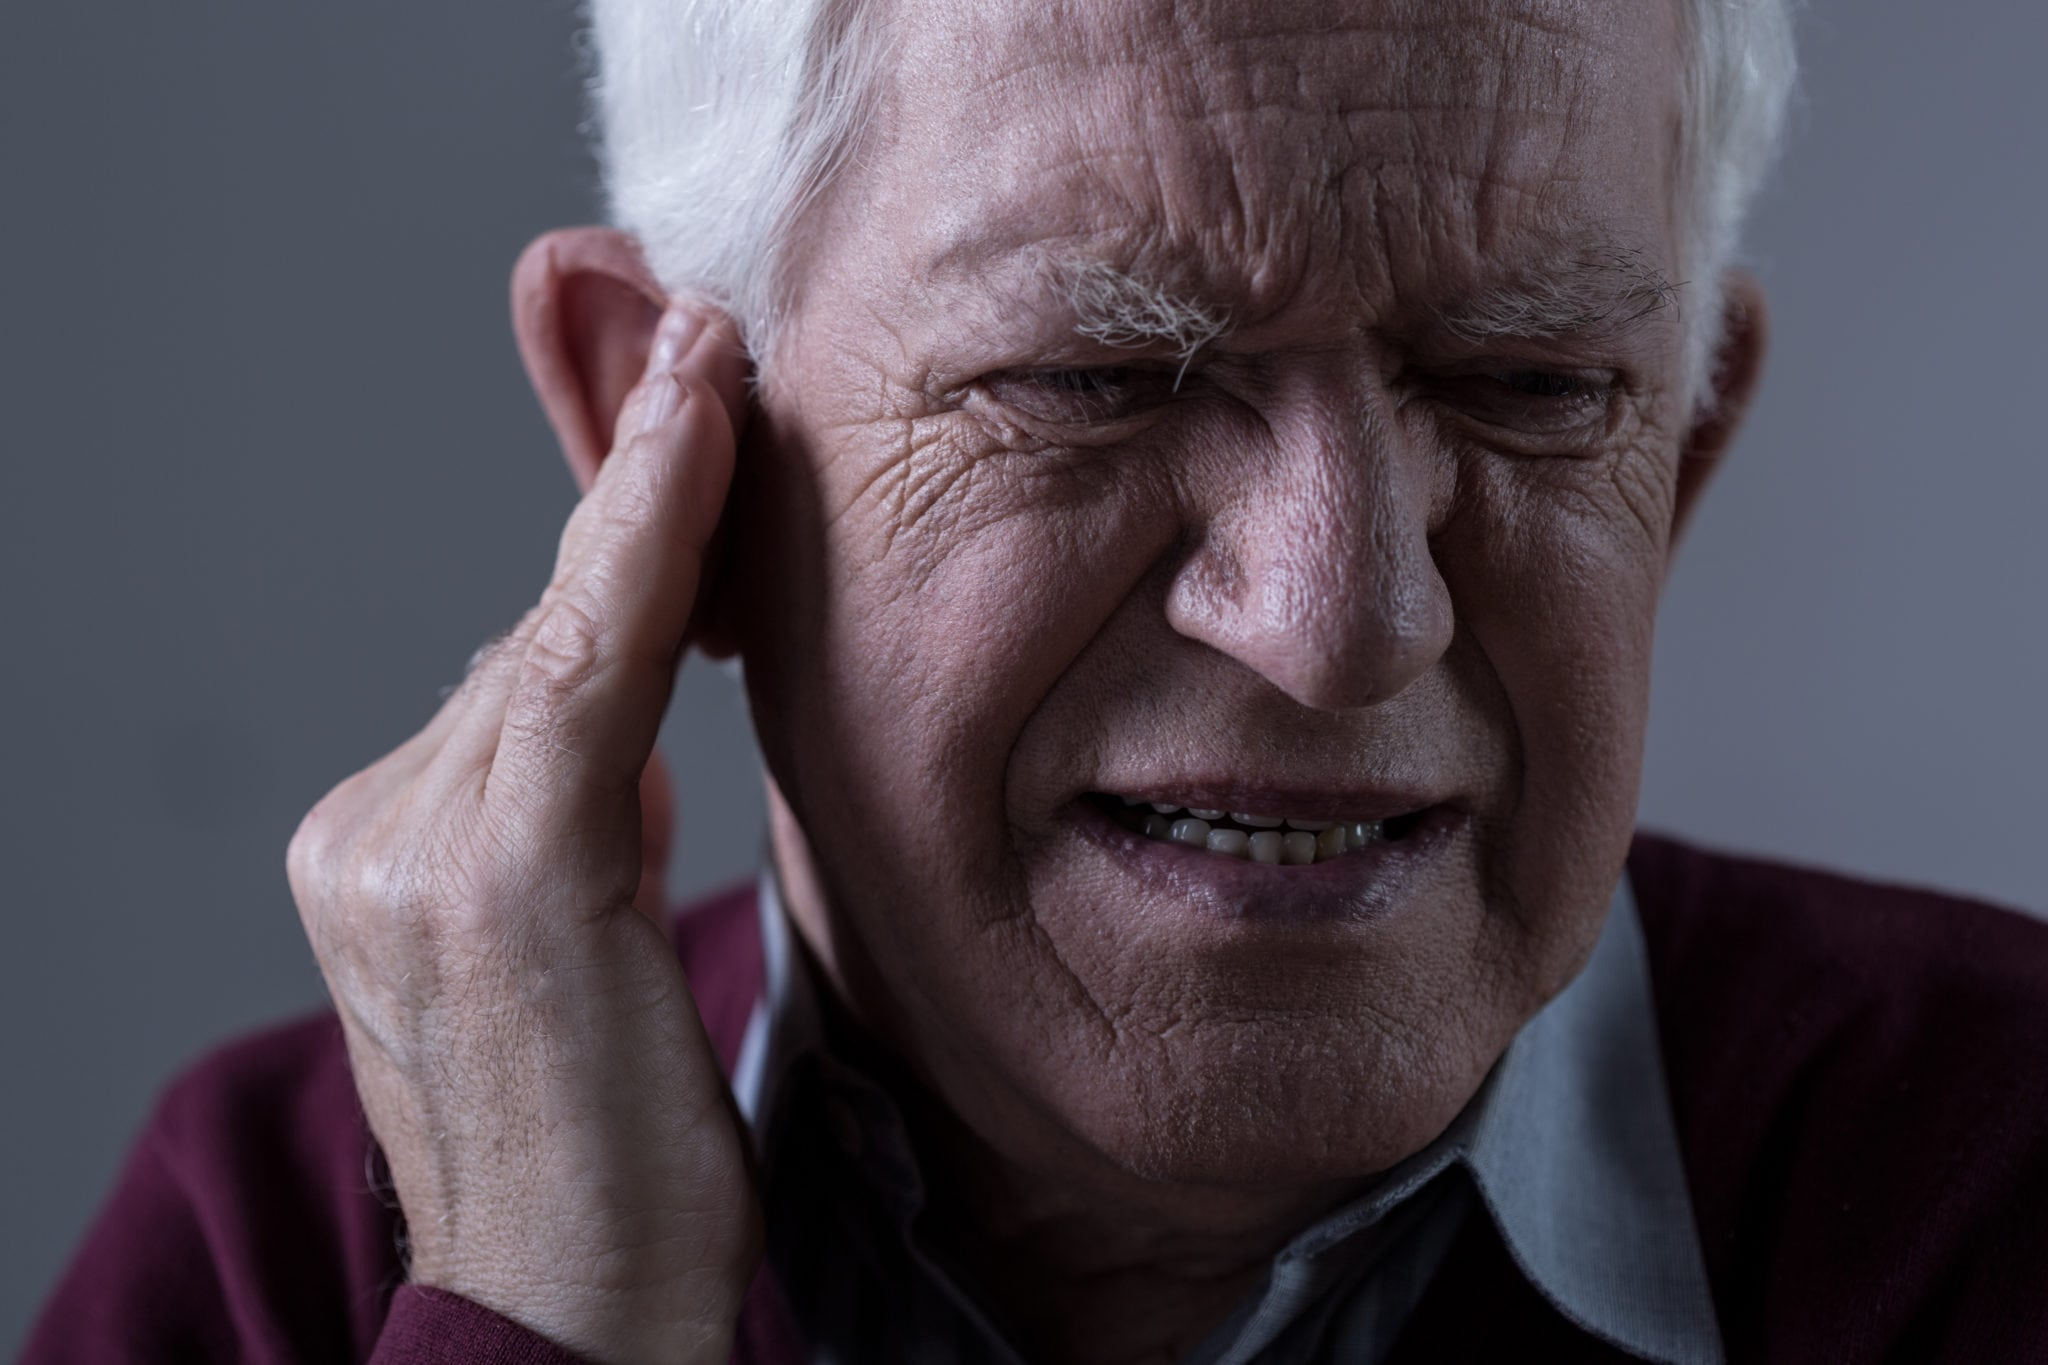 How can hearing aids help relieve my Tinnitus?